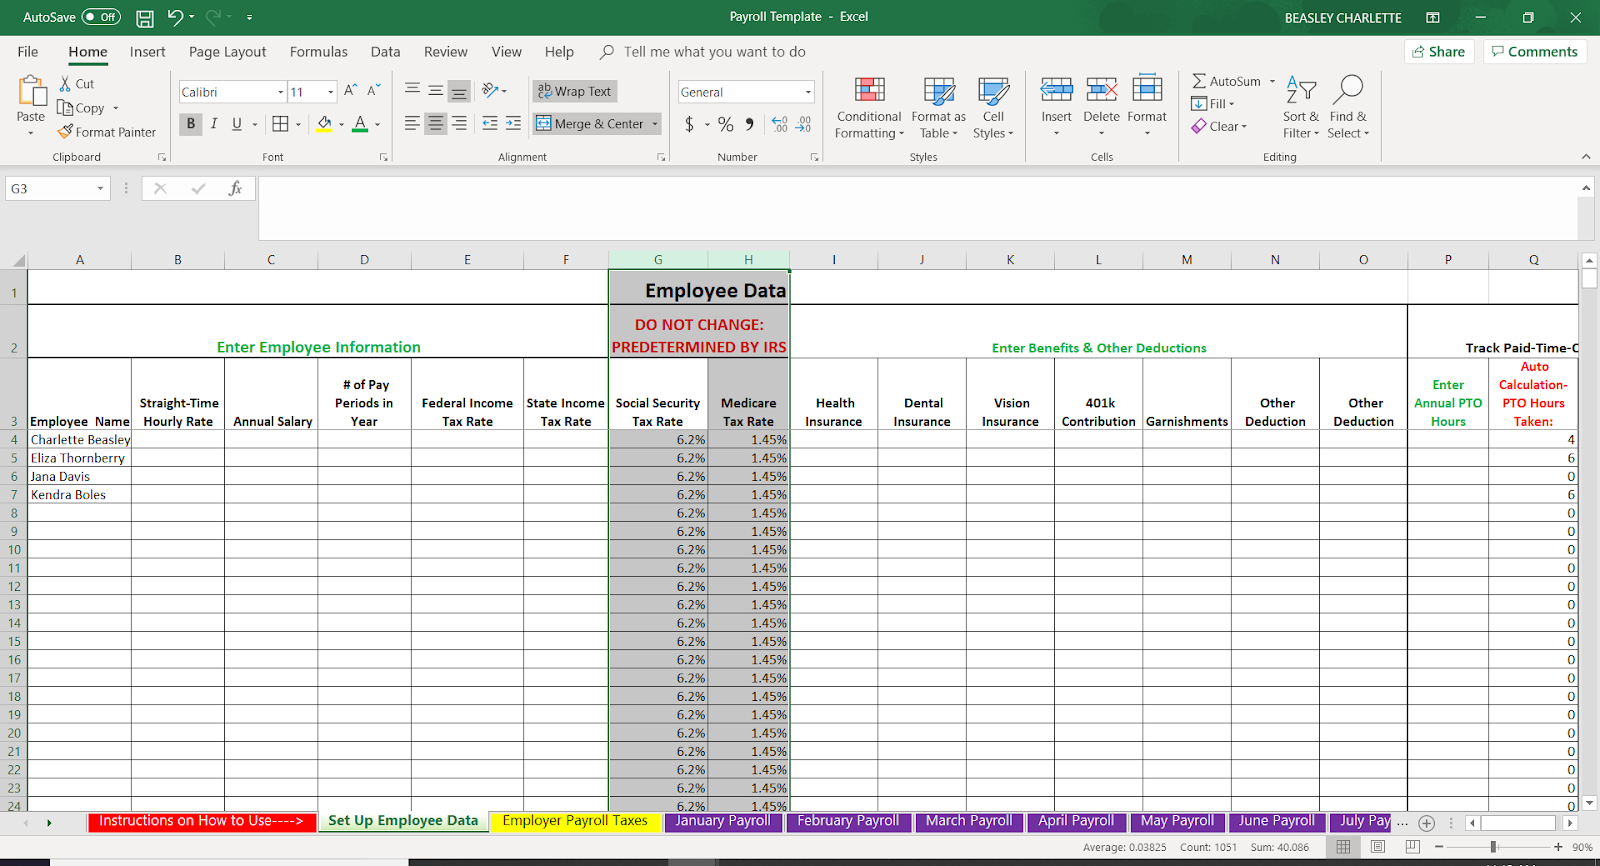 How to Do Payroll in Excel [+ Free Template]